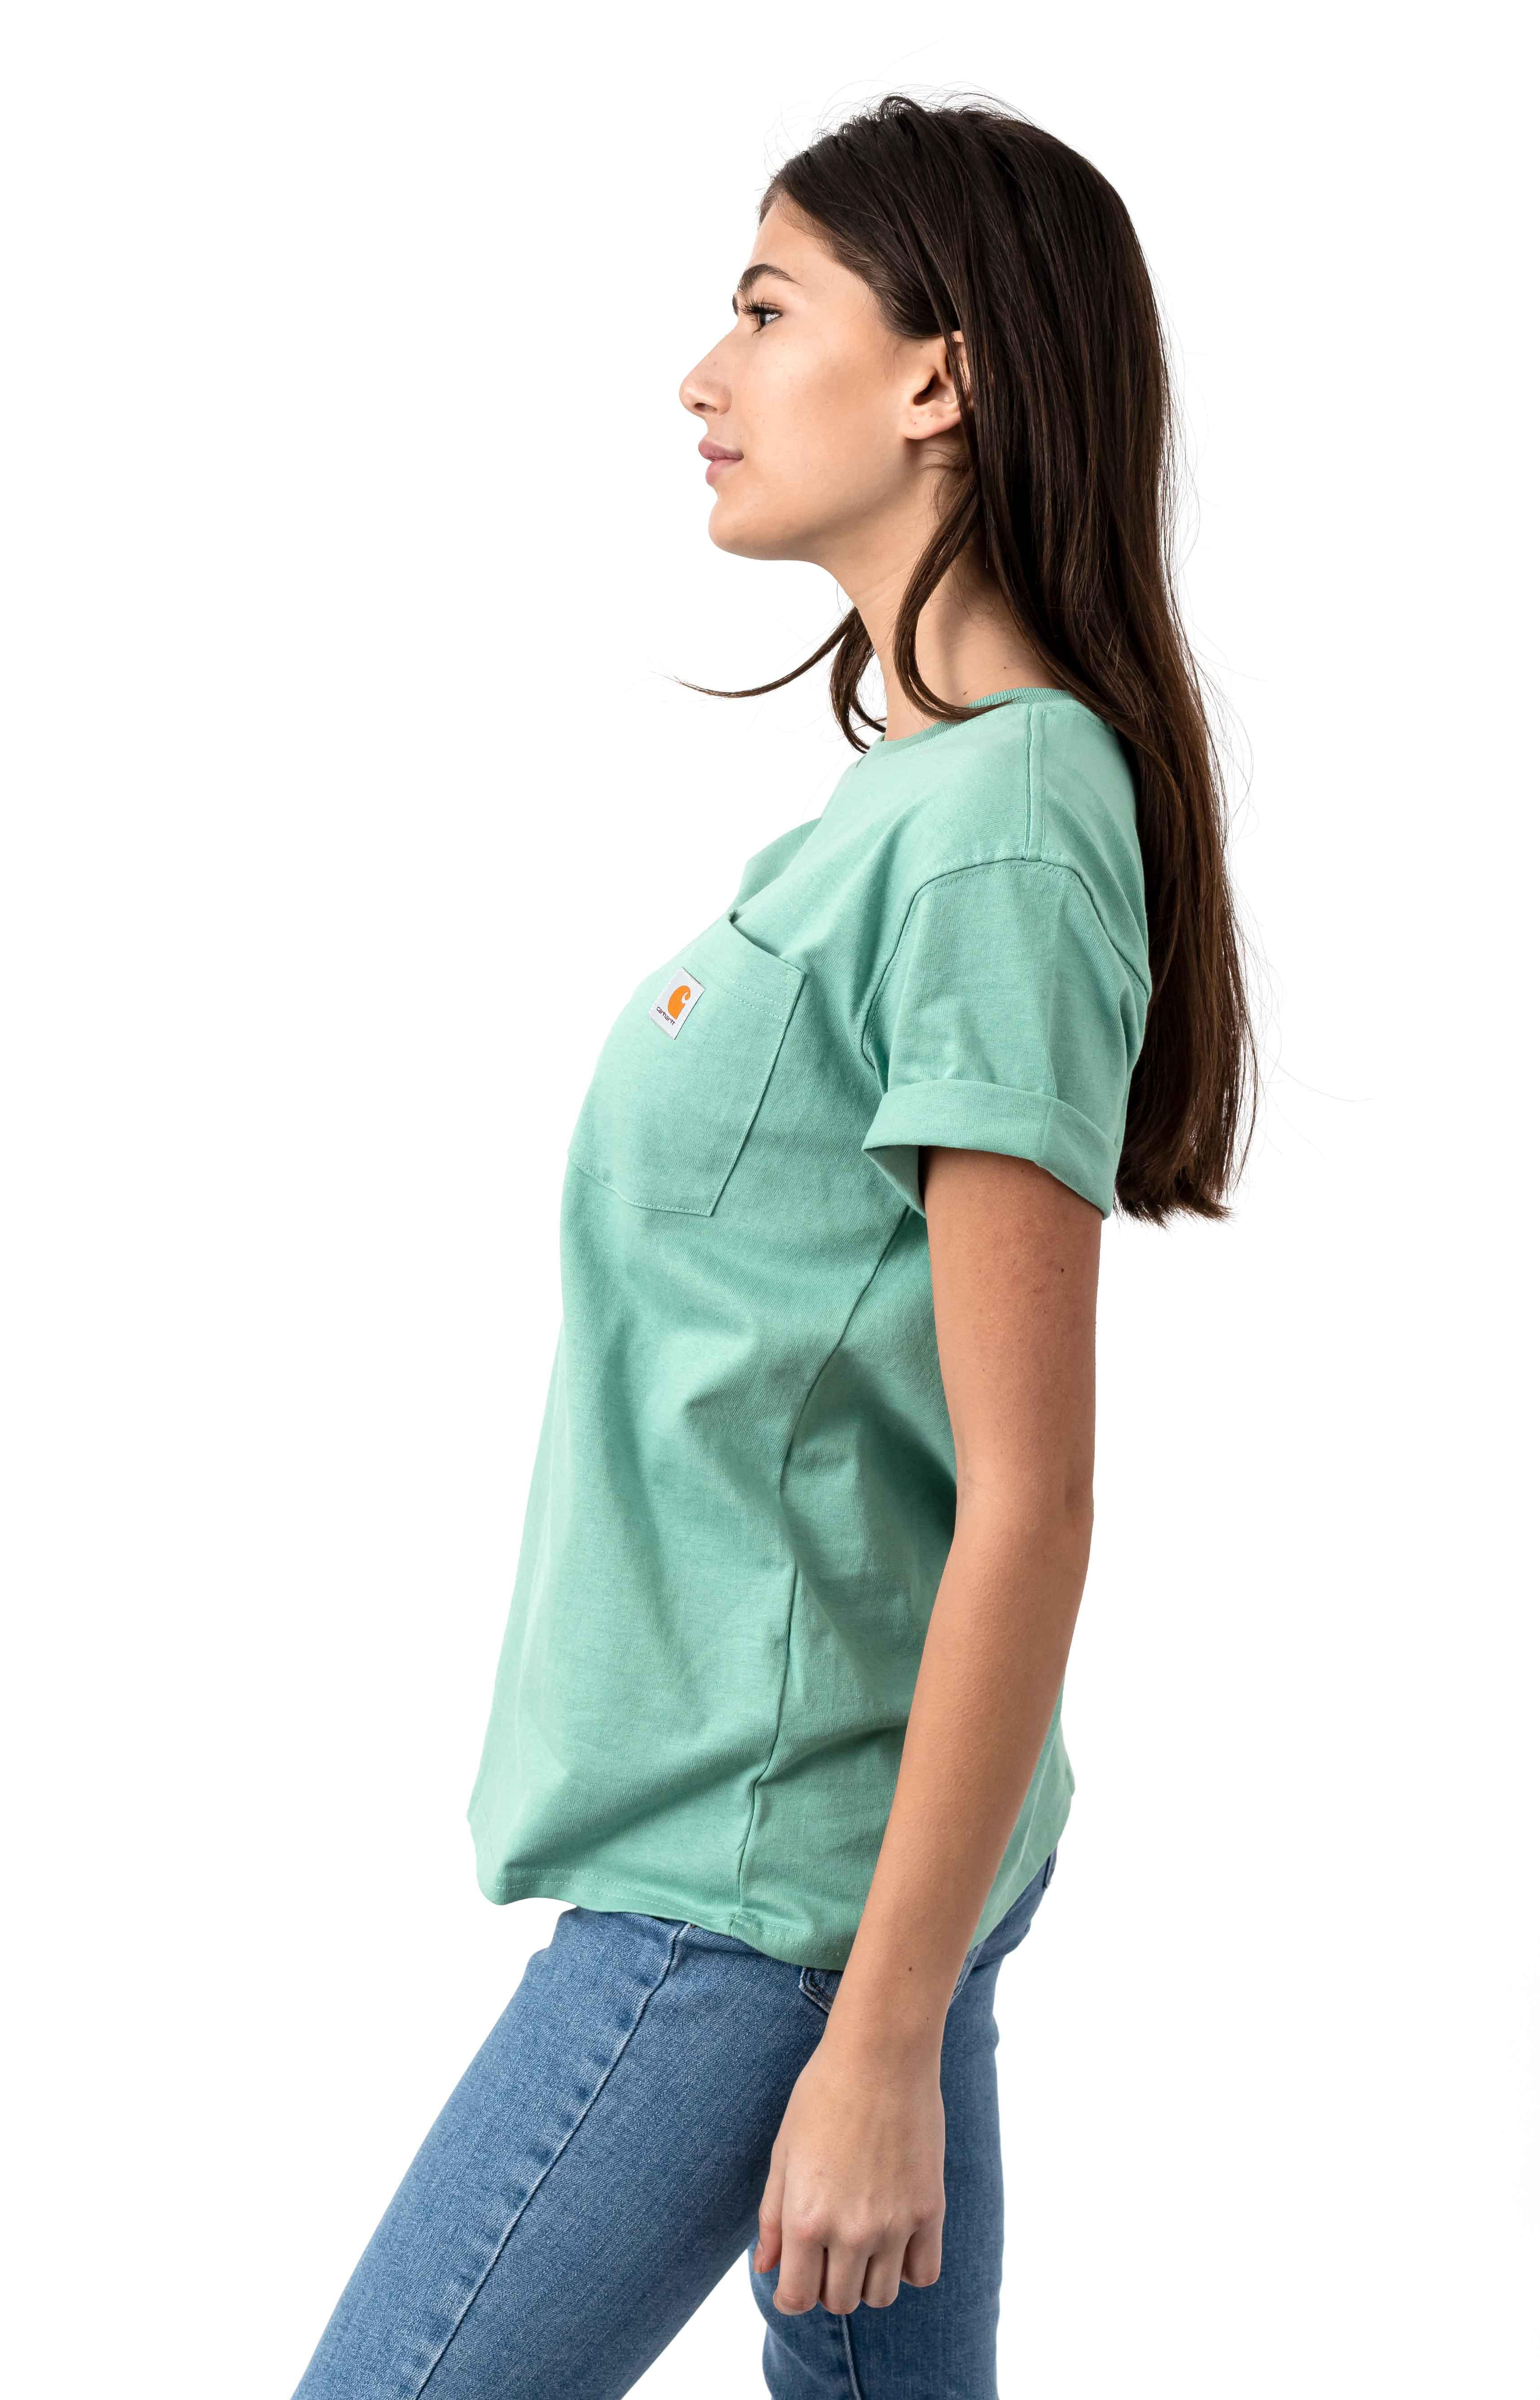 (103067) WK87 Workwear Pocket T-Shirt - Botanic Green 2